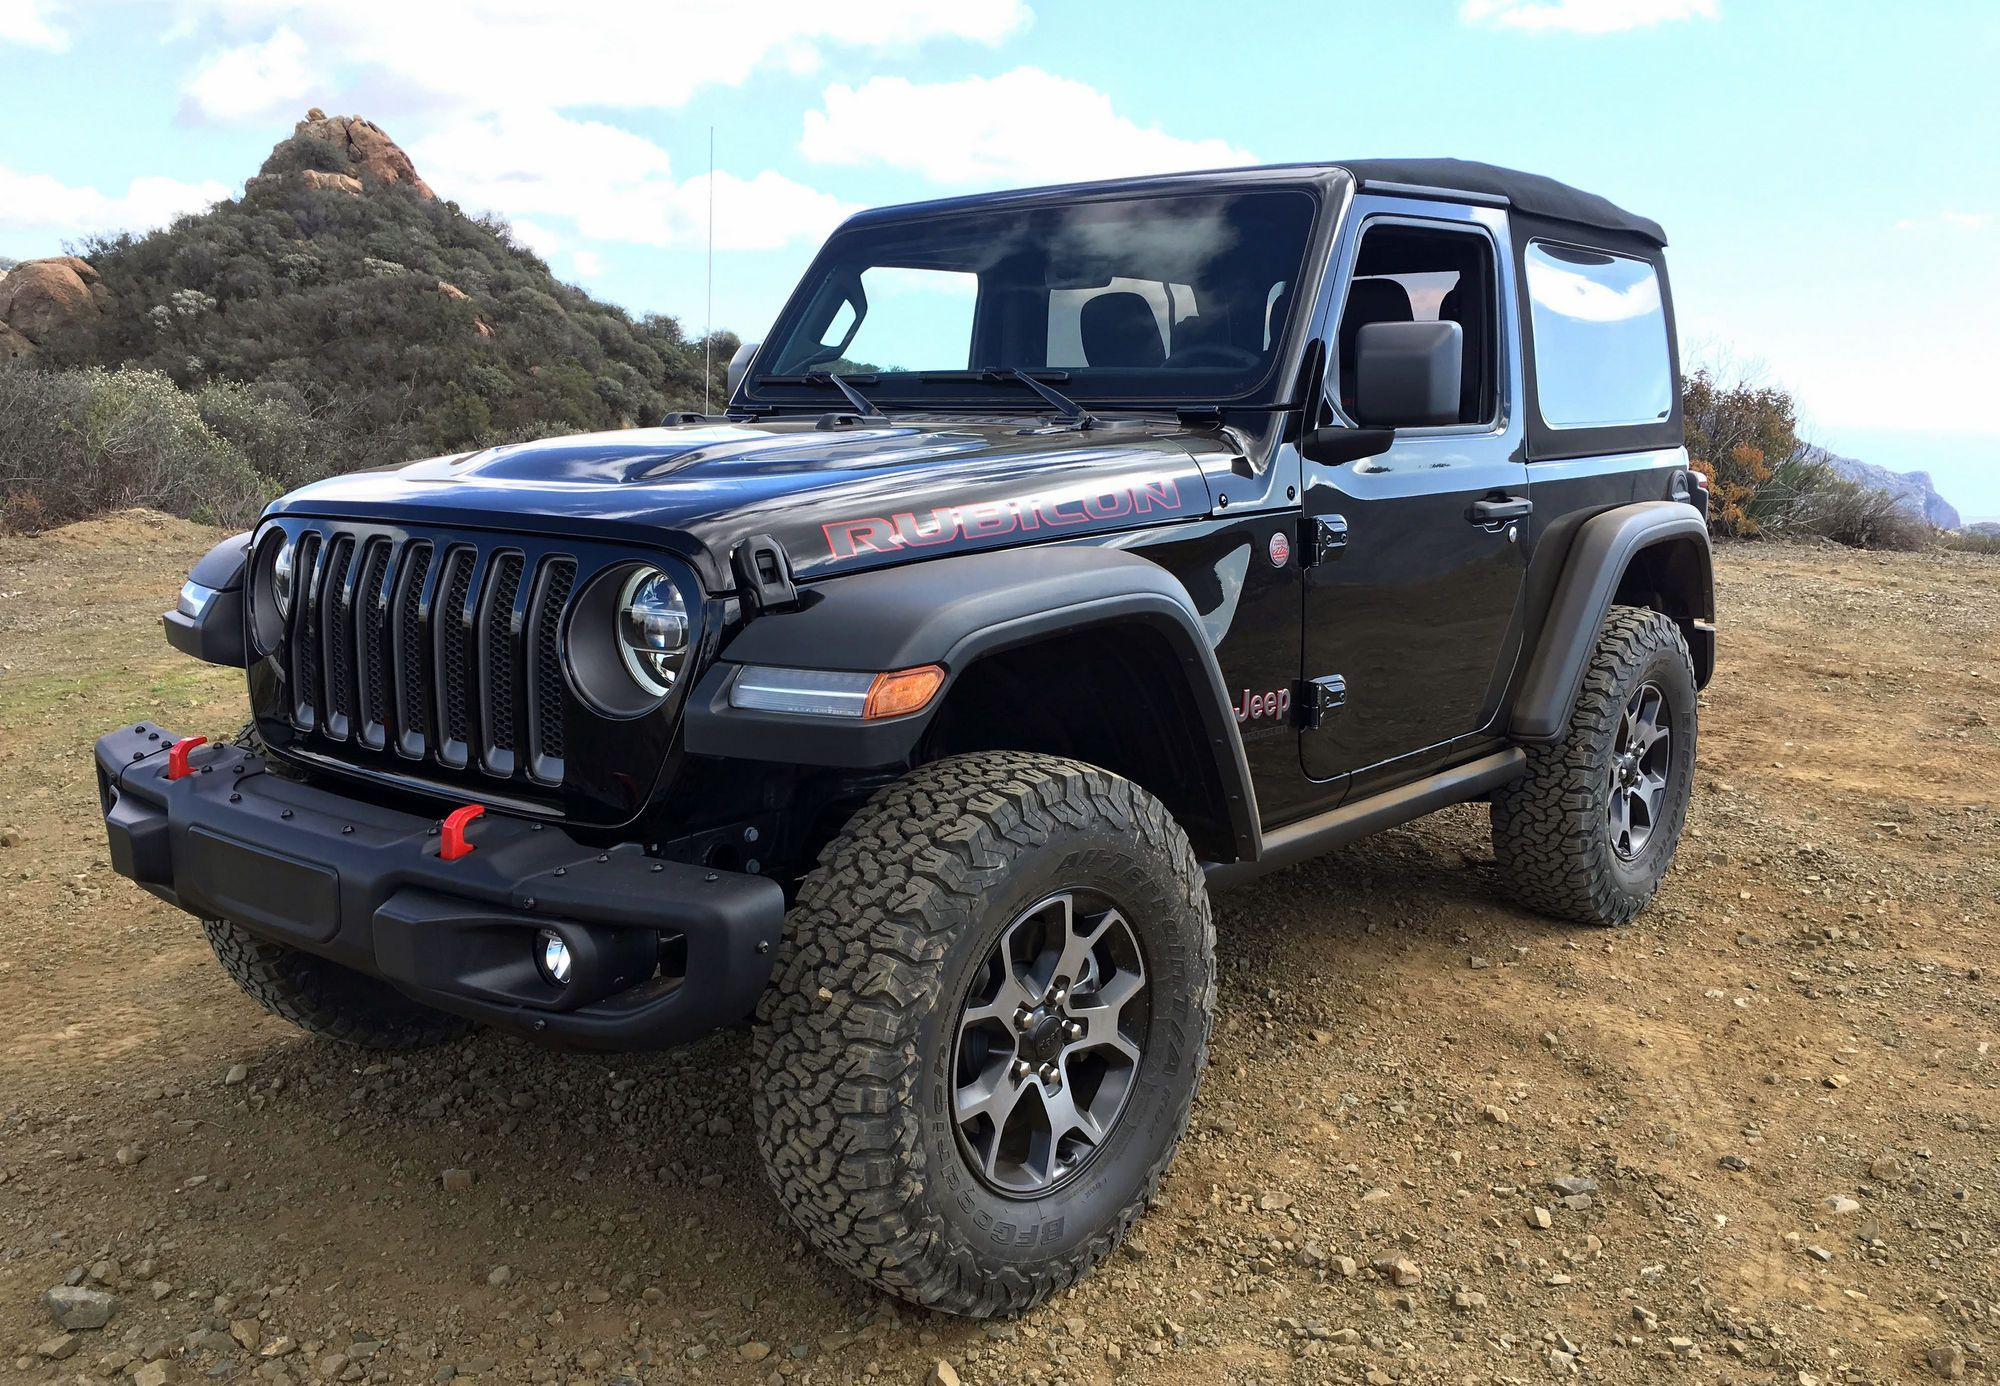 2019 Jeep Wrangler Flash Drive Event 2018 Jeep Wrangler And 2019